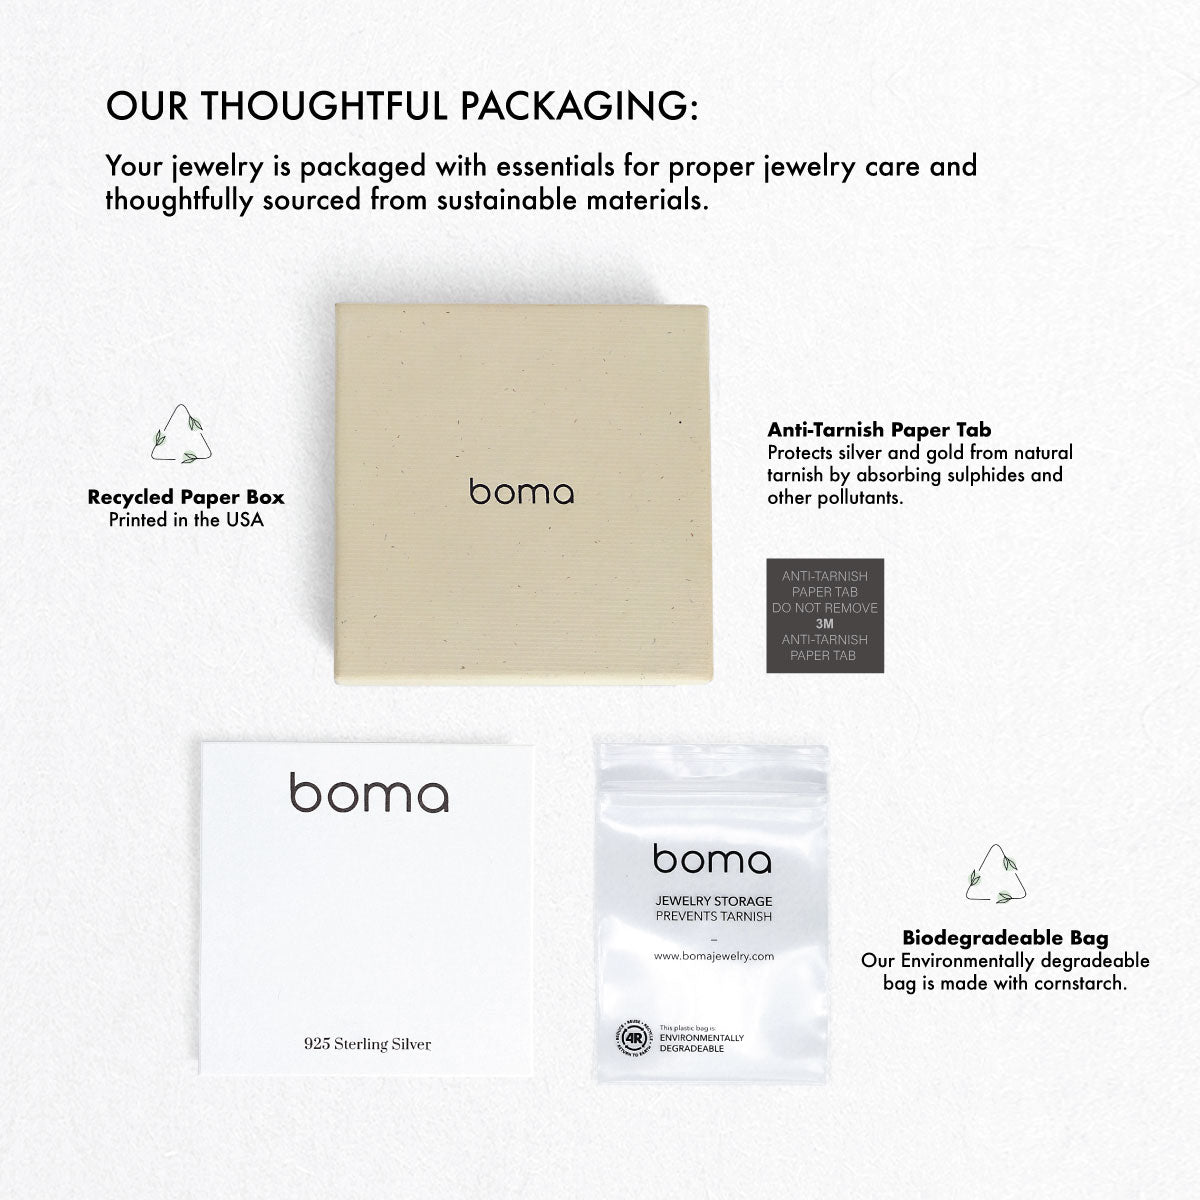 Boma Jewelry Packaging